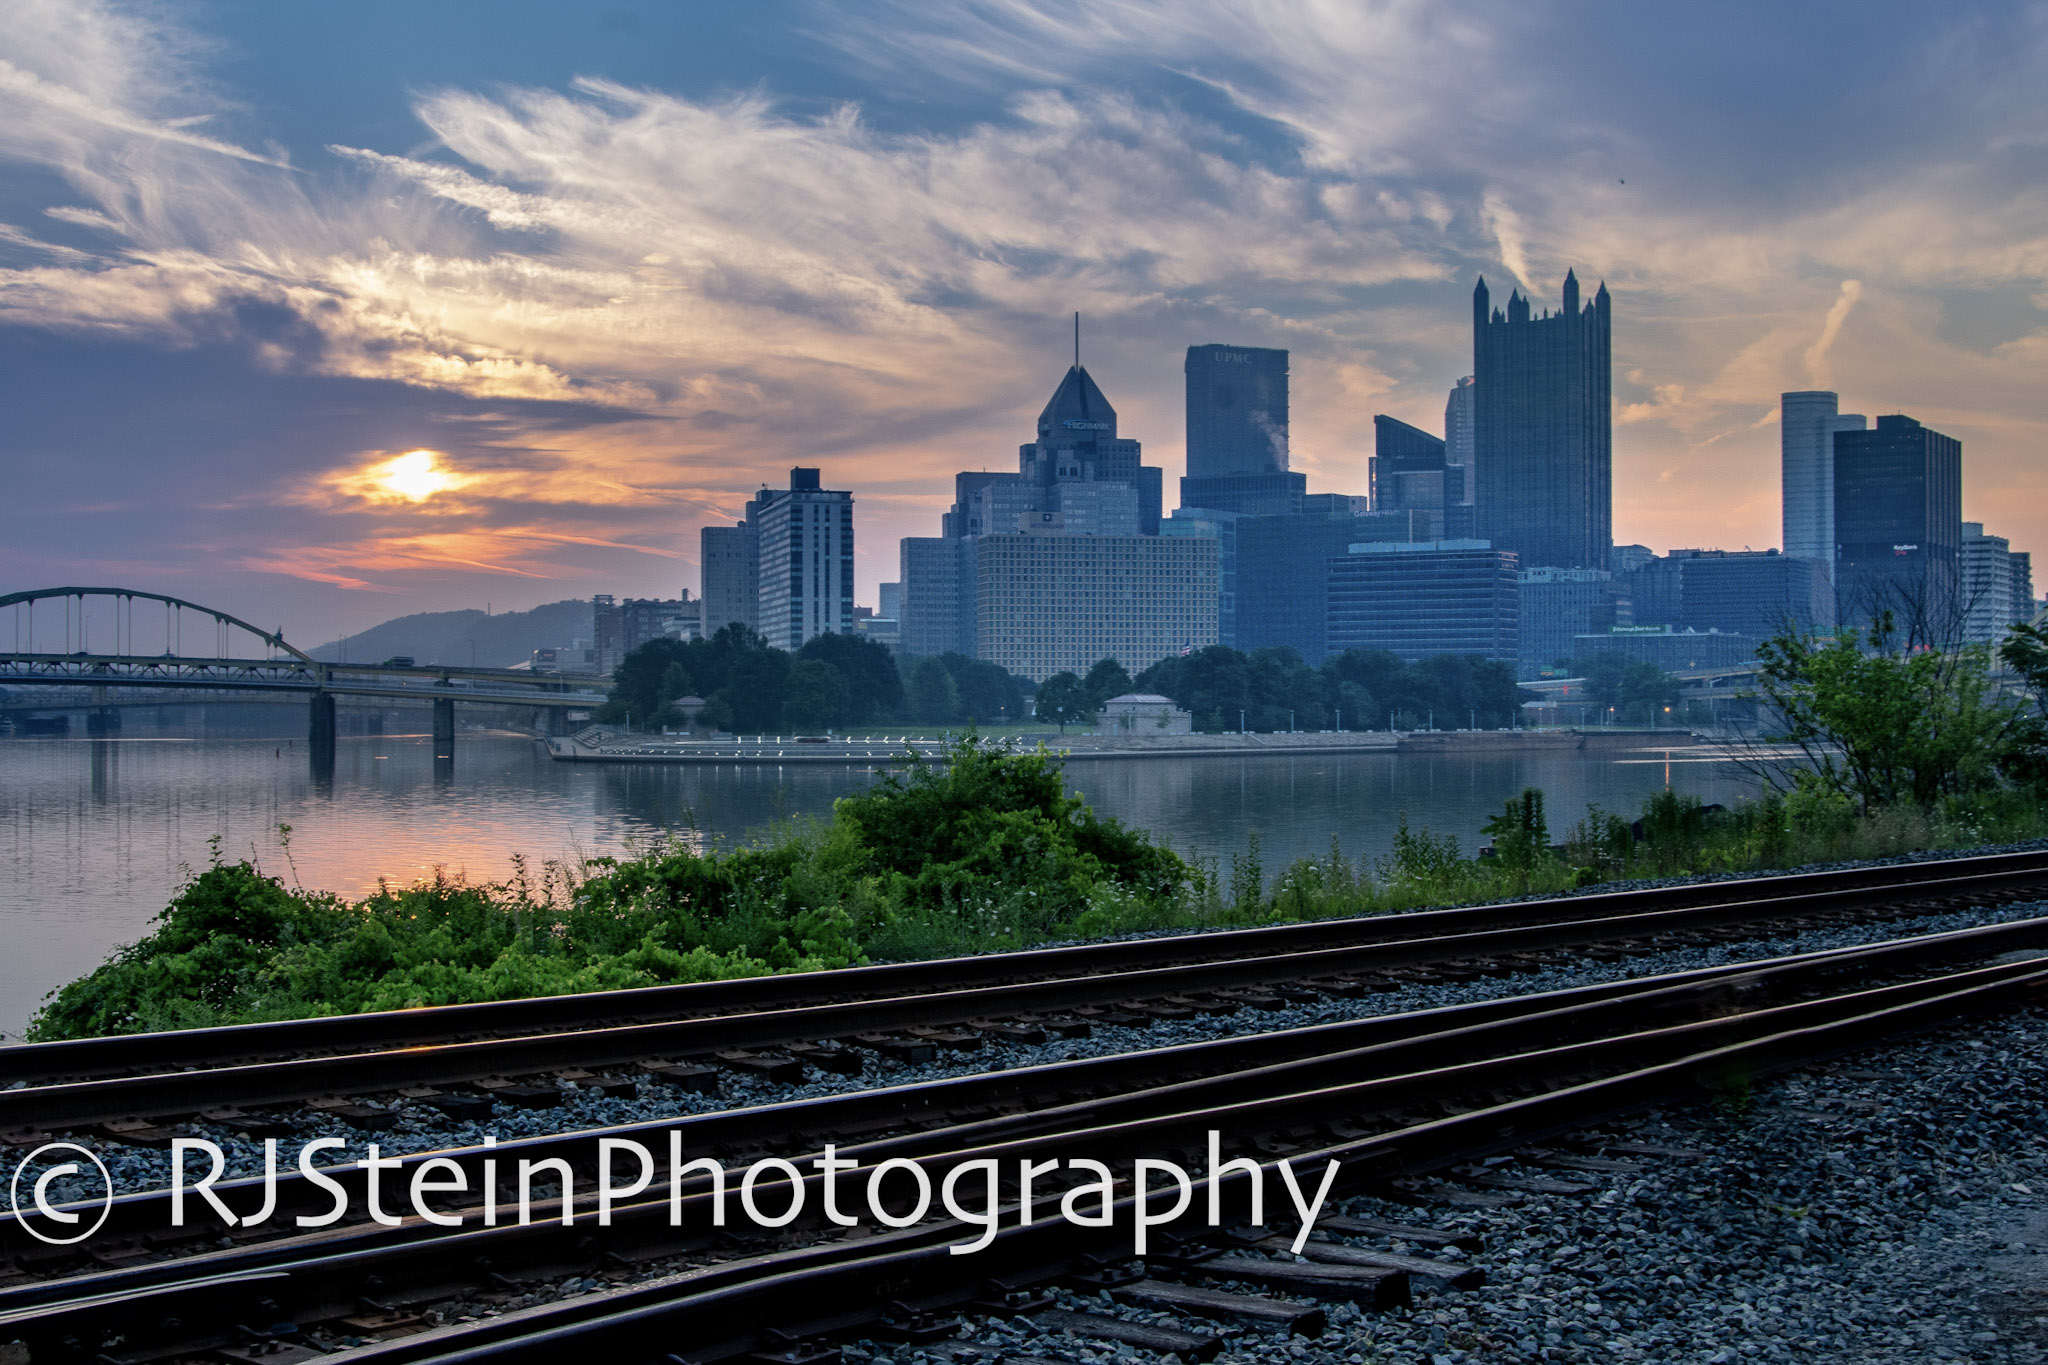 good morning from the train tracks, pittsburgh, 2018